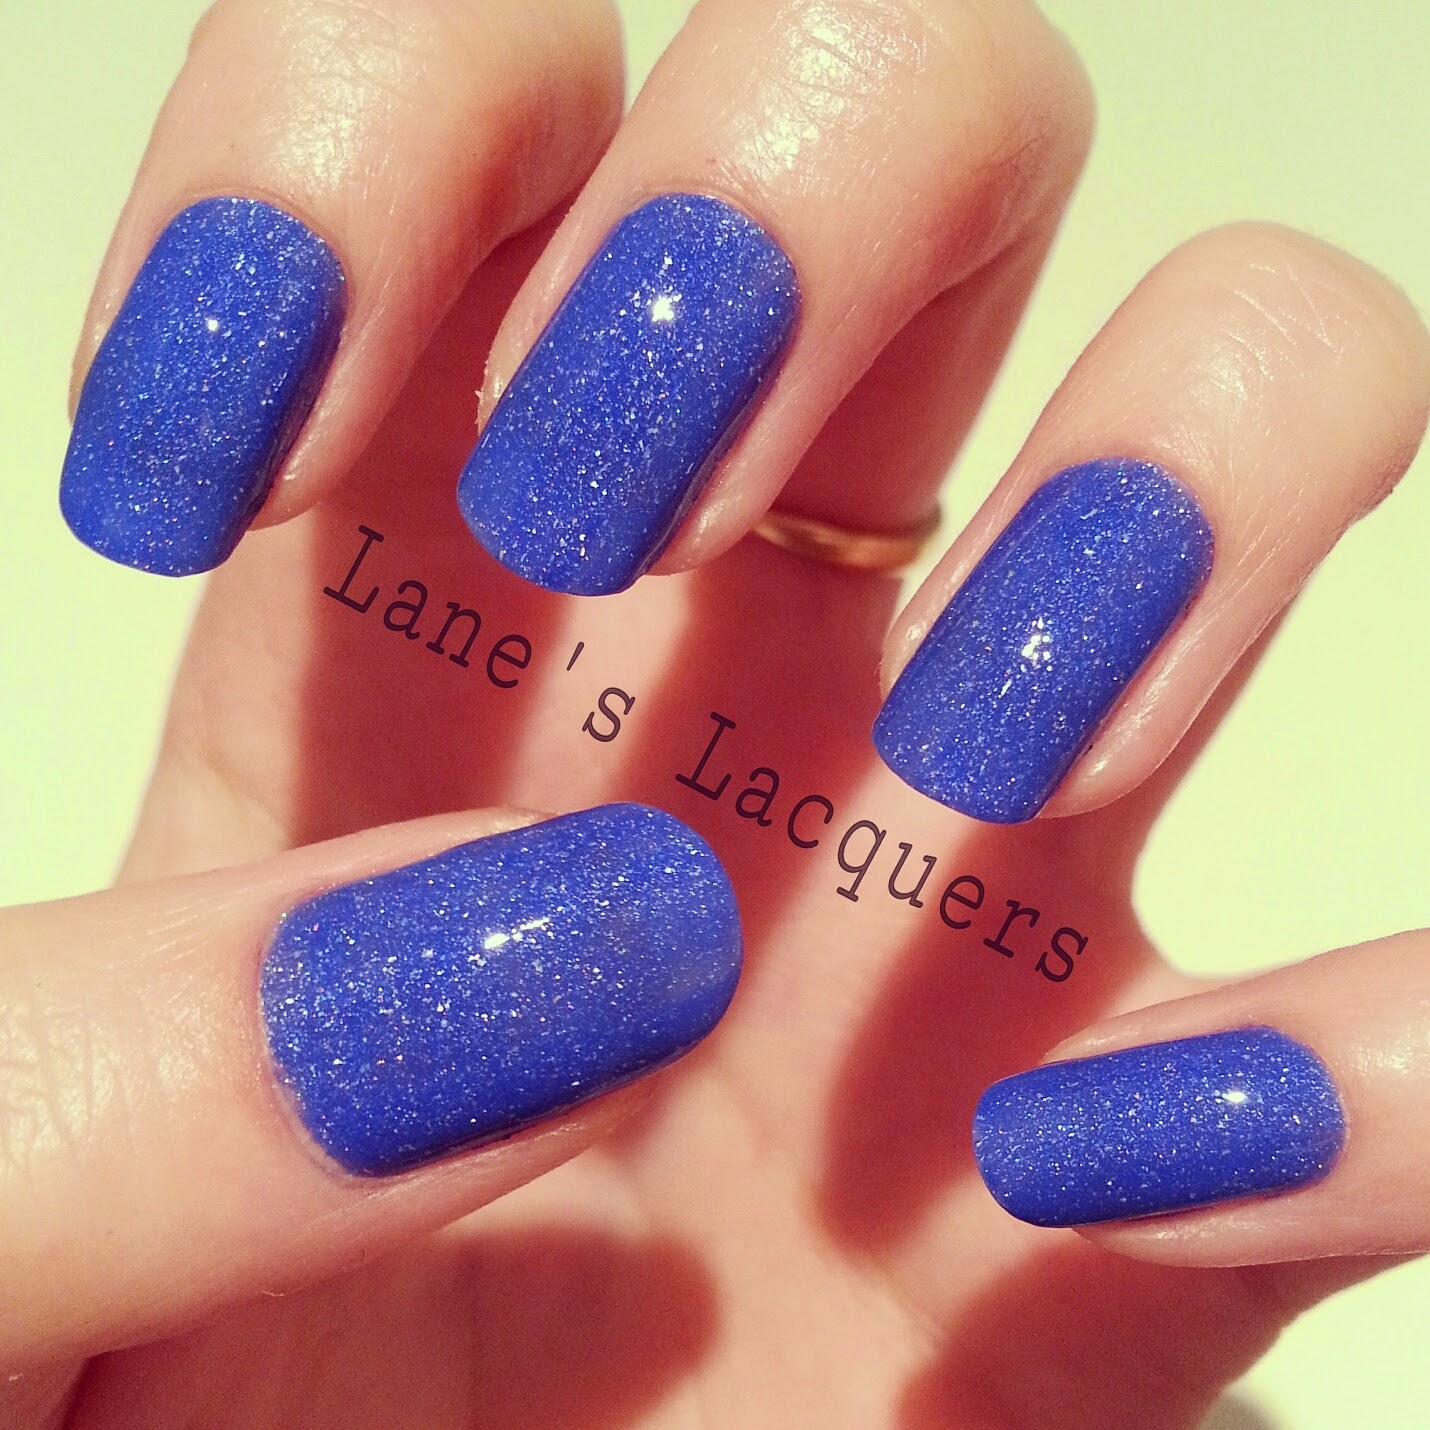 new-picture-polish-forget-me-not-swatch-manicure